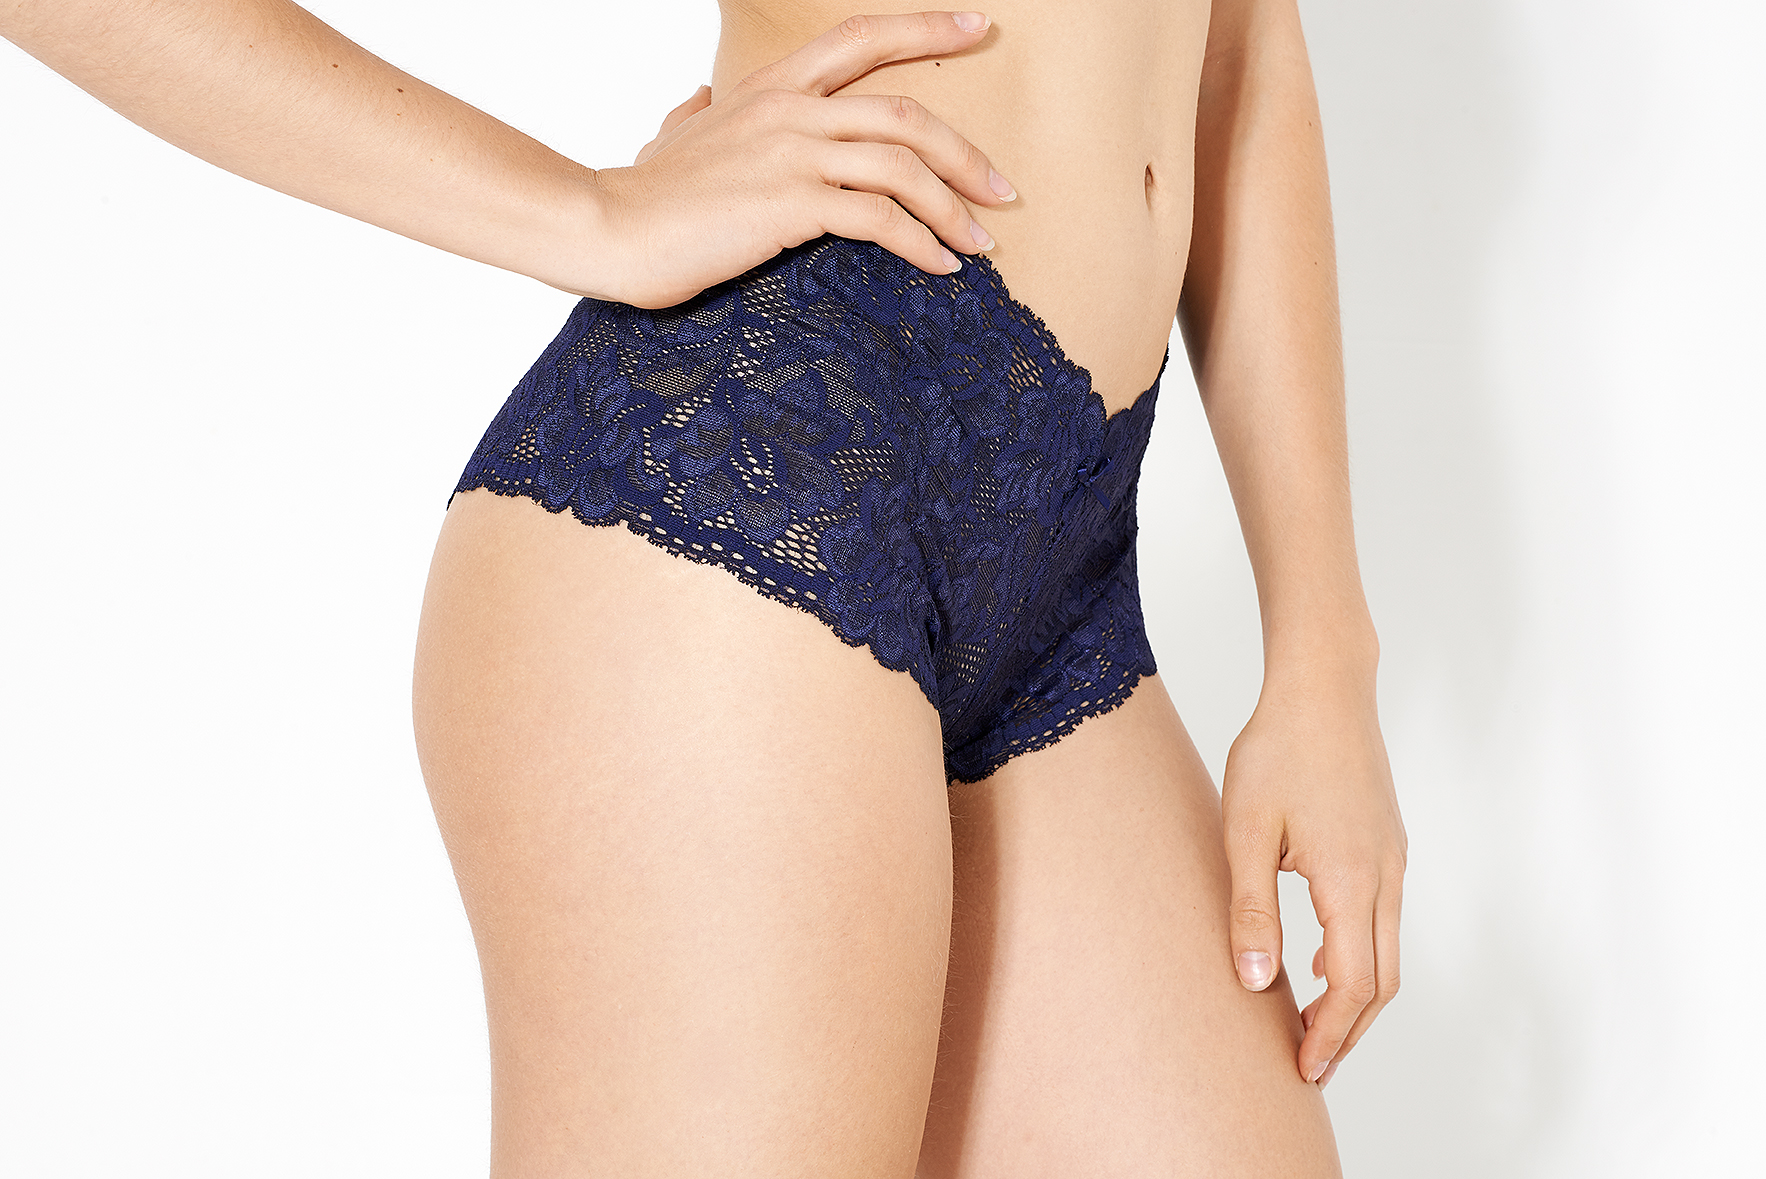 noteworthy-knicker-who-made-your-pants-uk-ethical-lingerie-company-french-knickers-03